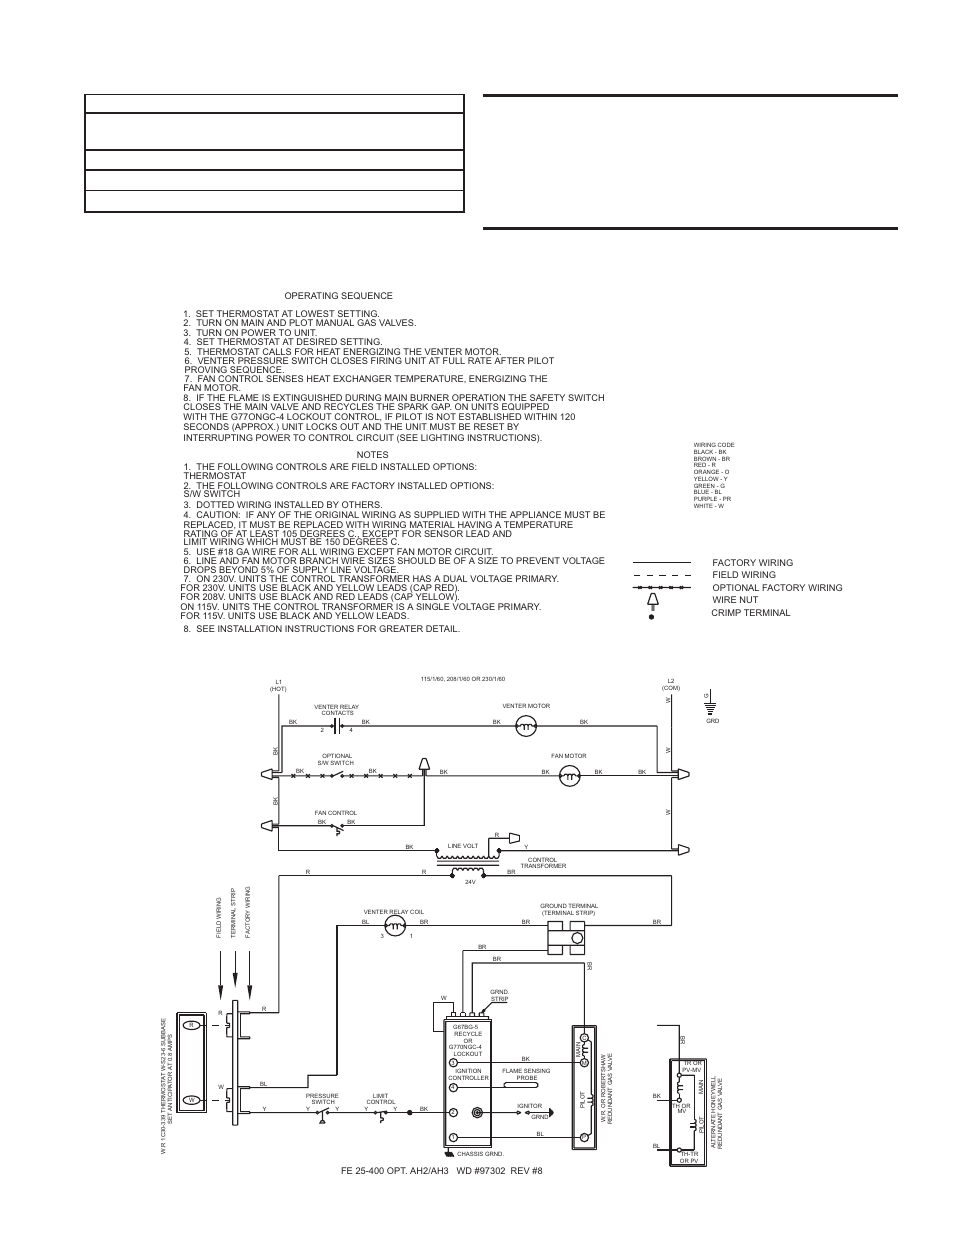 reznor be unit installation manual page14 typical wiring diagrams pages 13 16 reznor be unit field controls power venter wiring diagram at edmiracle.co